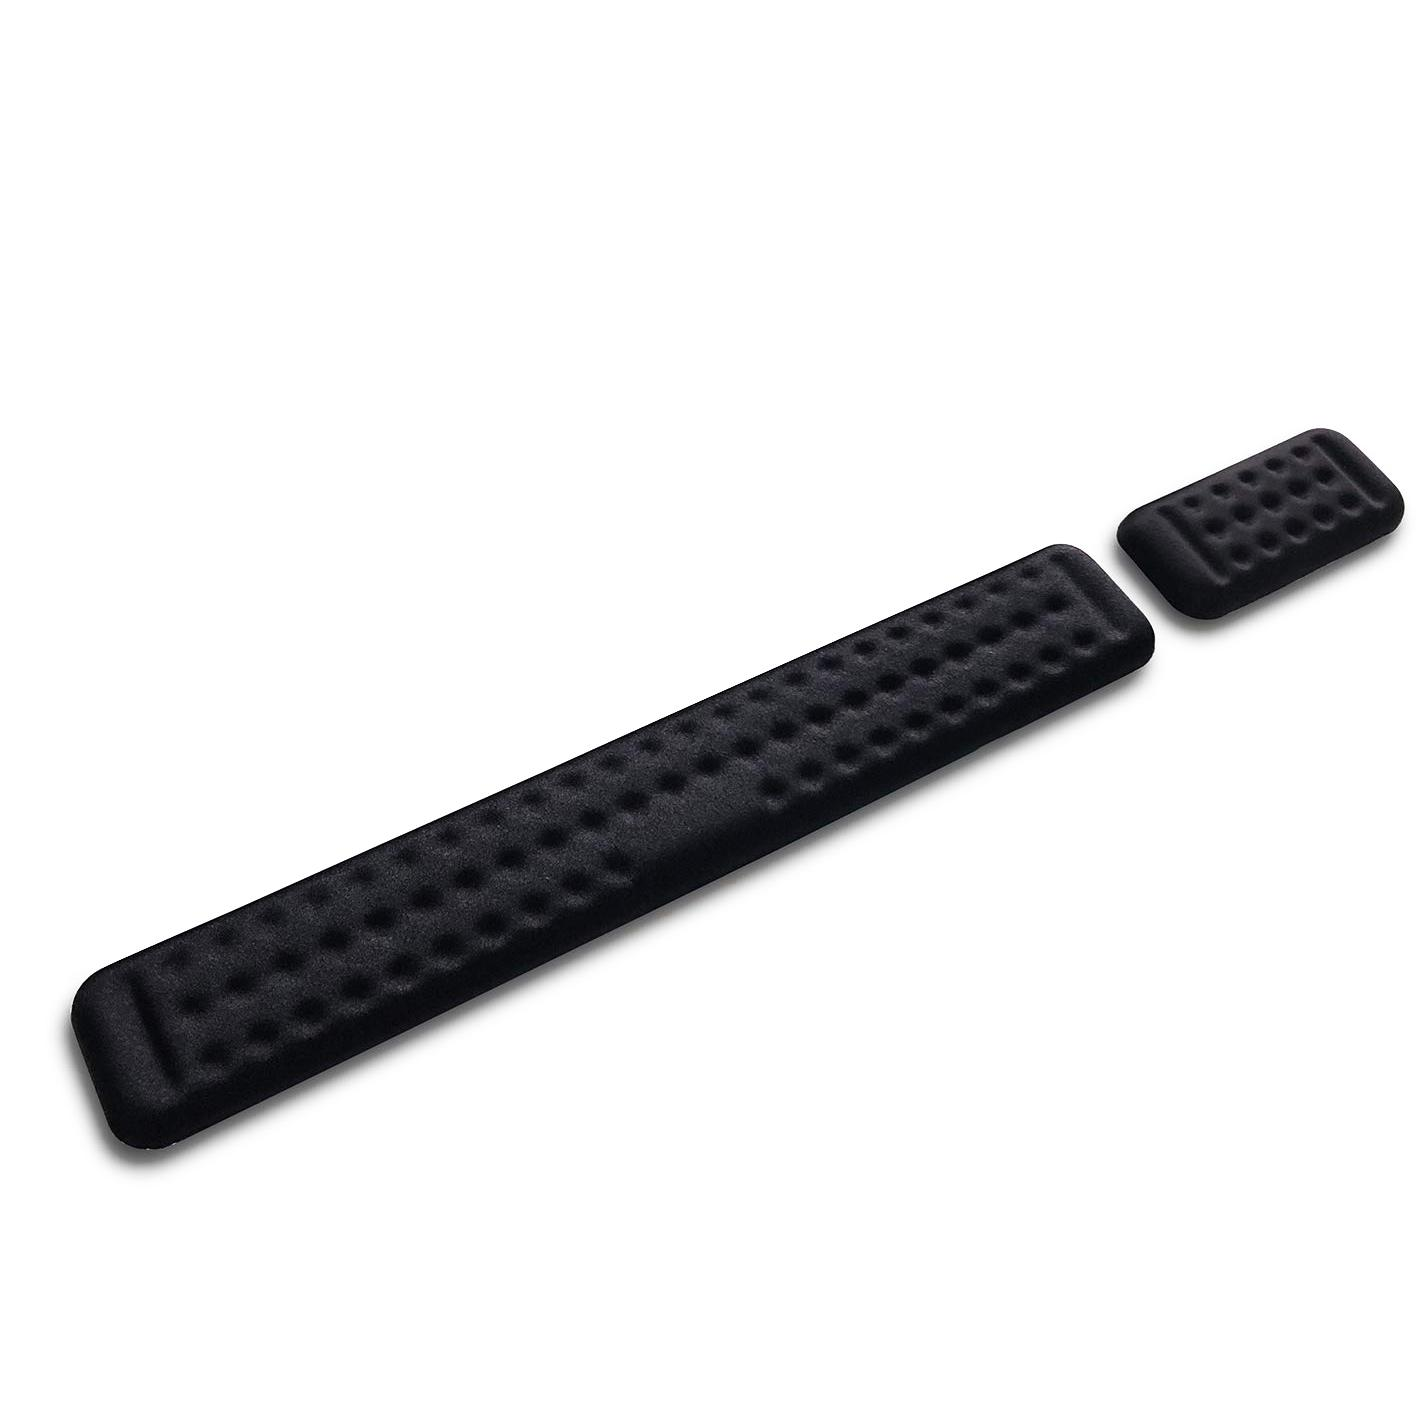 Keyboard Wrist Rest & Mouse Wrist Support Set-Memory Foam Gaming Wrist Cushion For Office, Computer, Laptop & Mac Typing - Ergonomic Wrist Pad For Rsi & Carpal Tunnel Malaysia